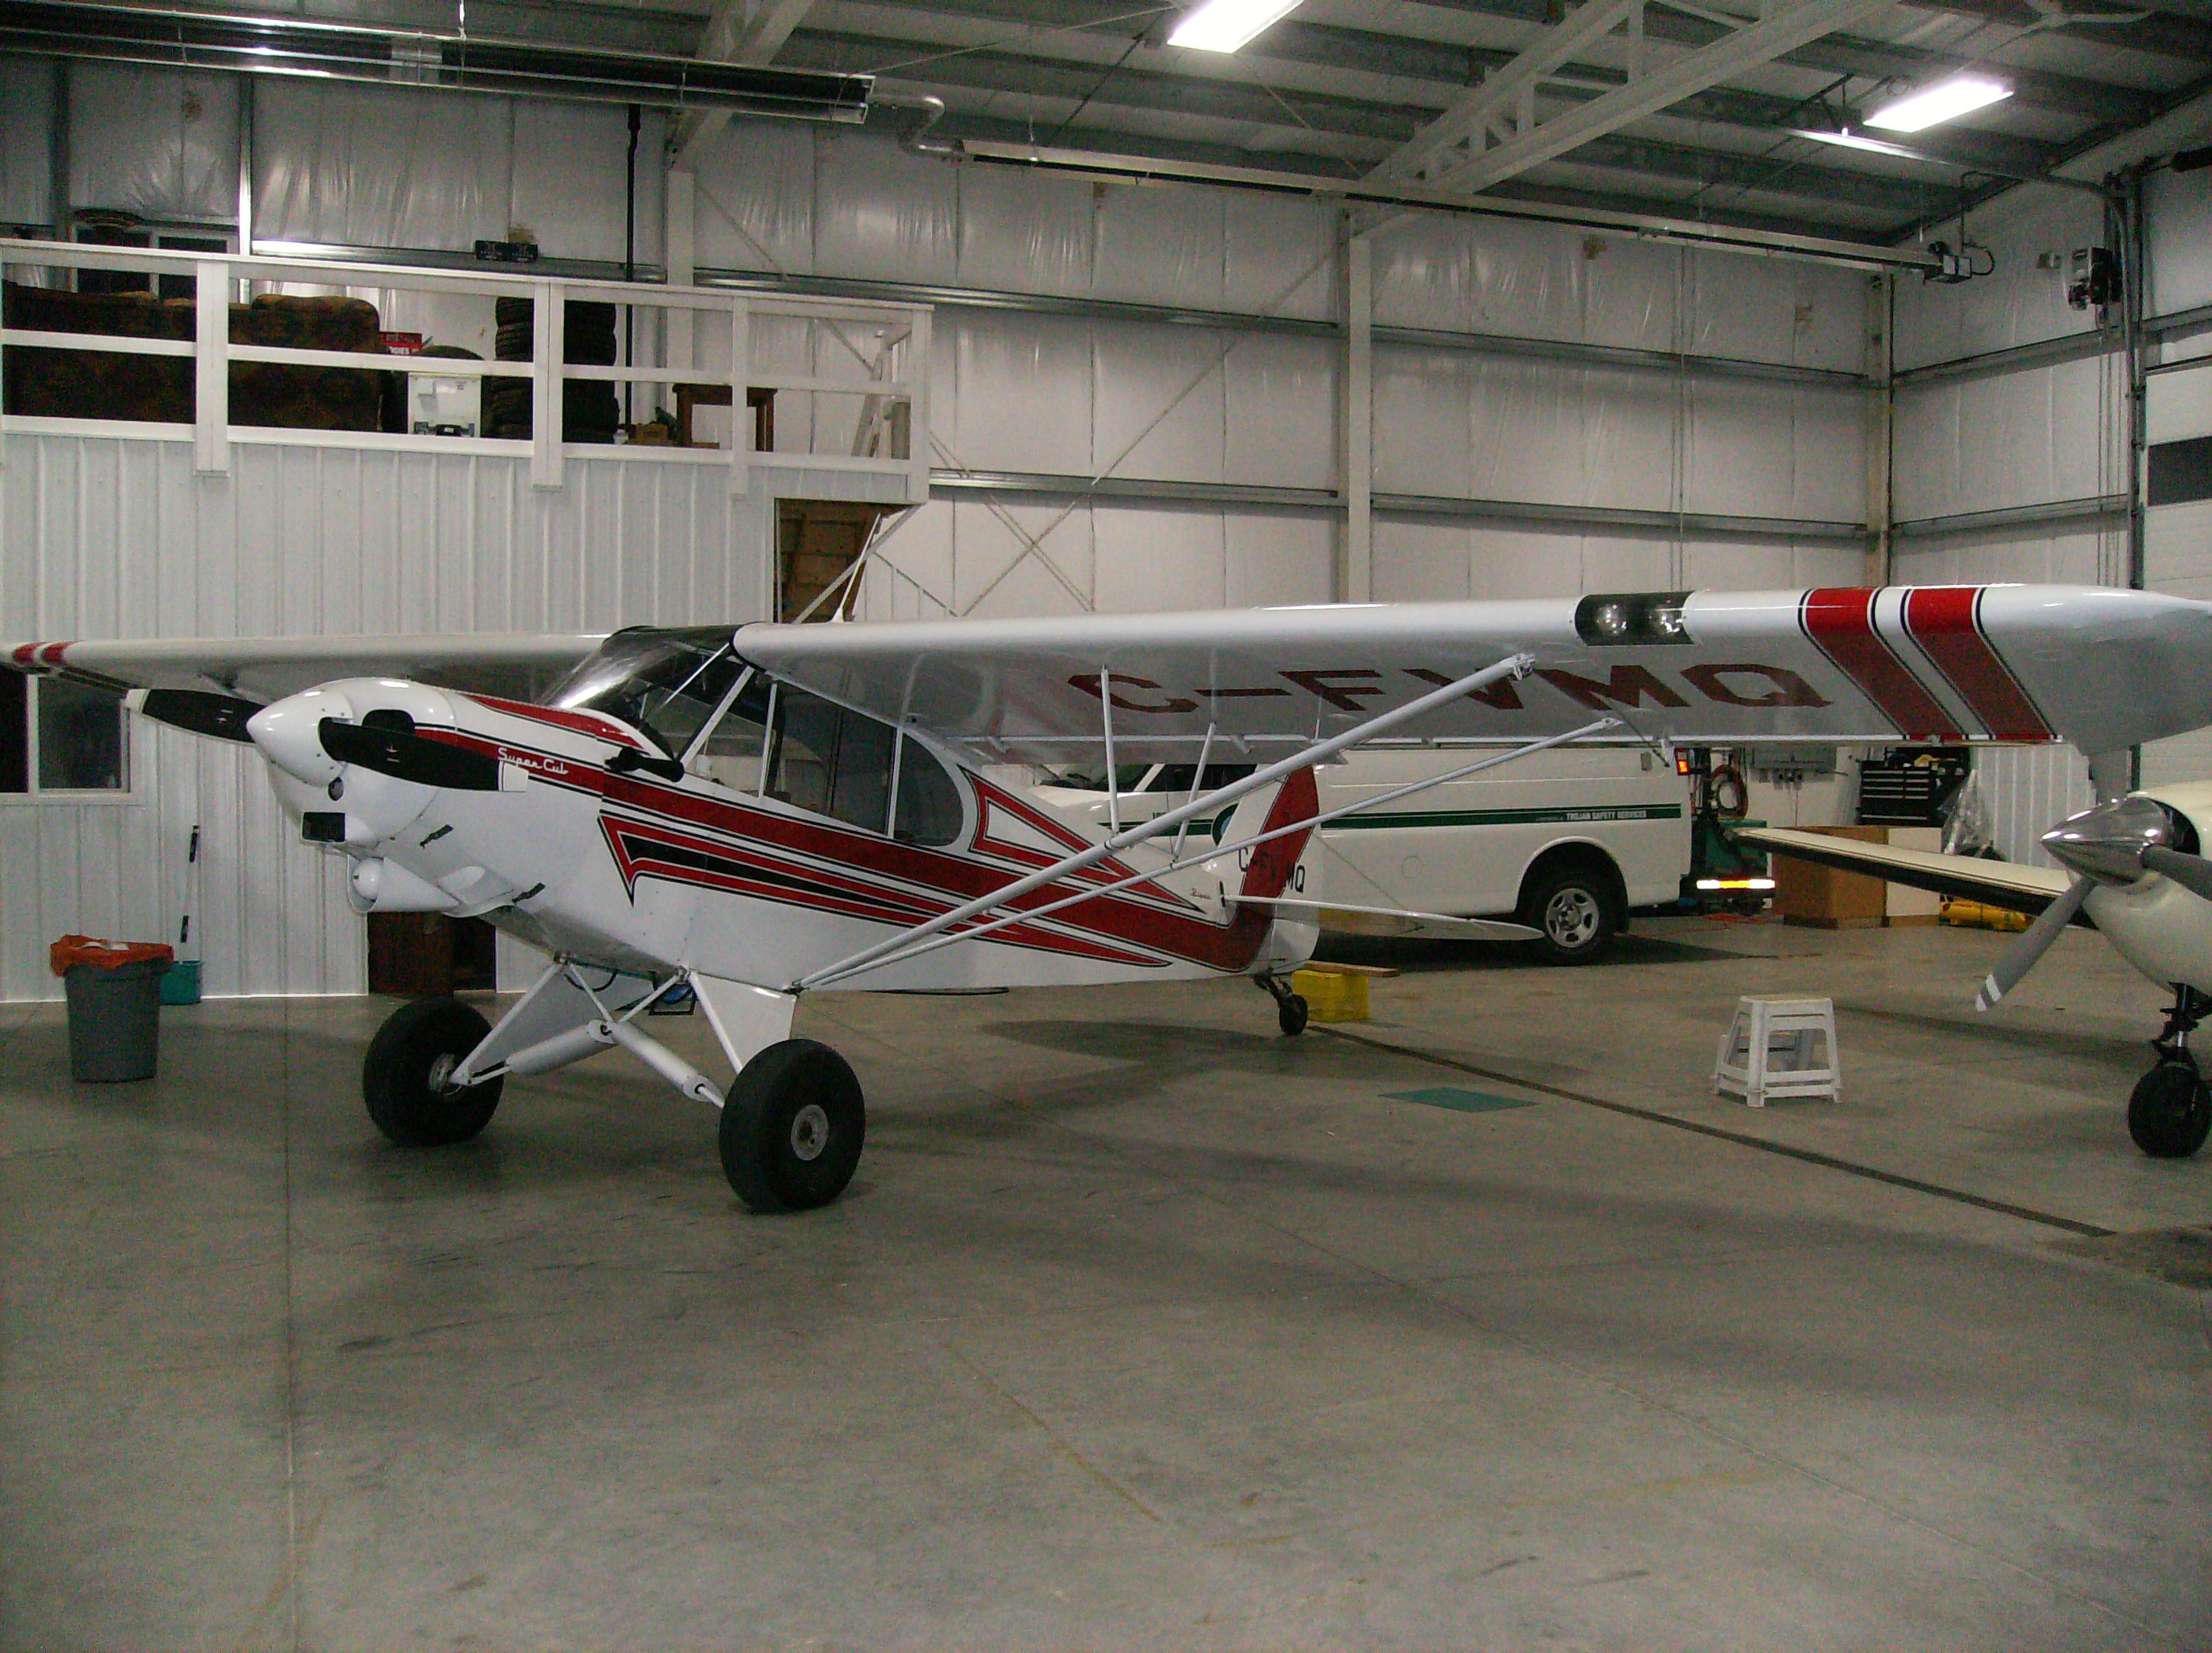 Red and white Airplane Finshed 004